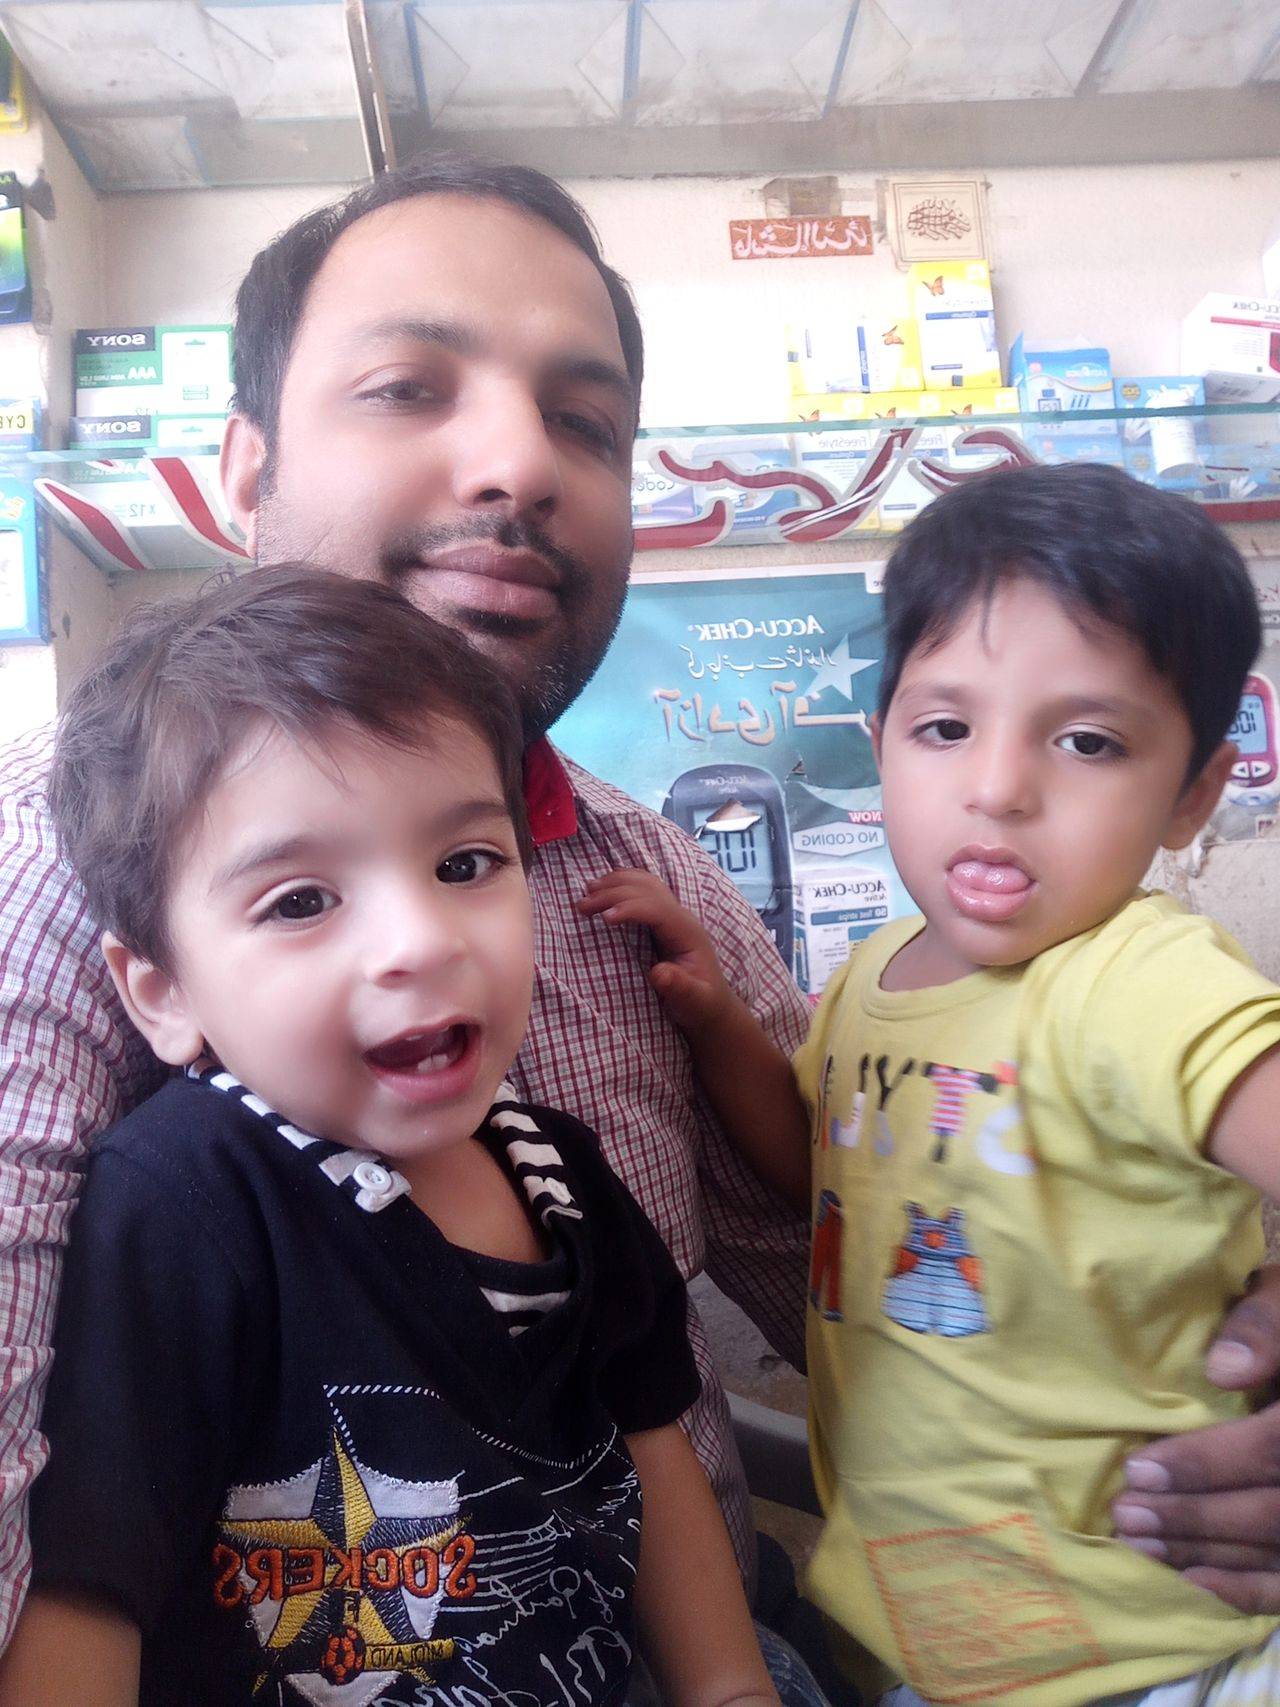 My nephew's Child Childhood Family With One Child Daughter Family Happiness Uff Uniqe Close-up Check This Out Hanging Out Boys Smiling Headshot Happiness Portrait Children Only Reflection Enjoying Life Children Photography Relaxing Friendship Happy :) Nature Beauty